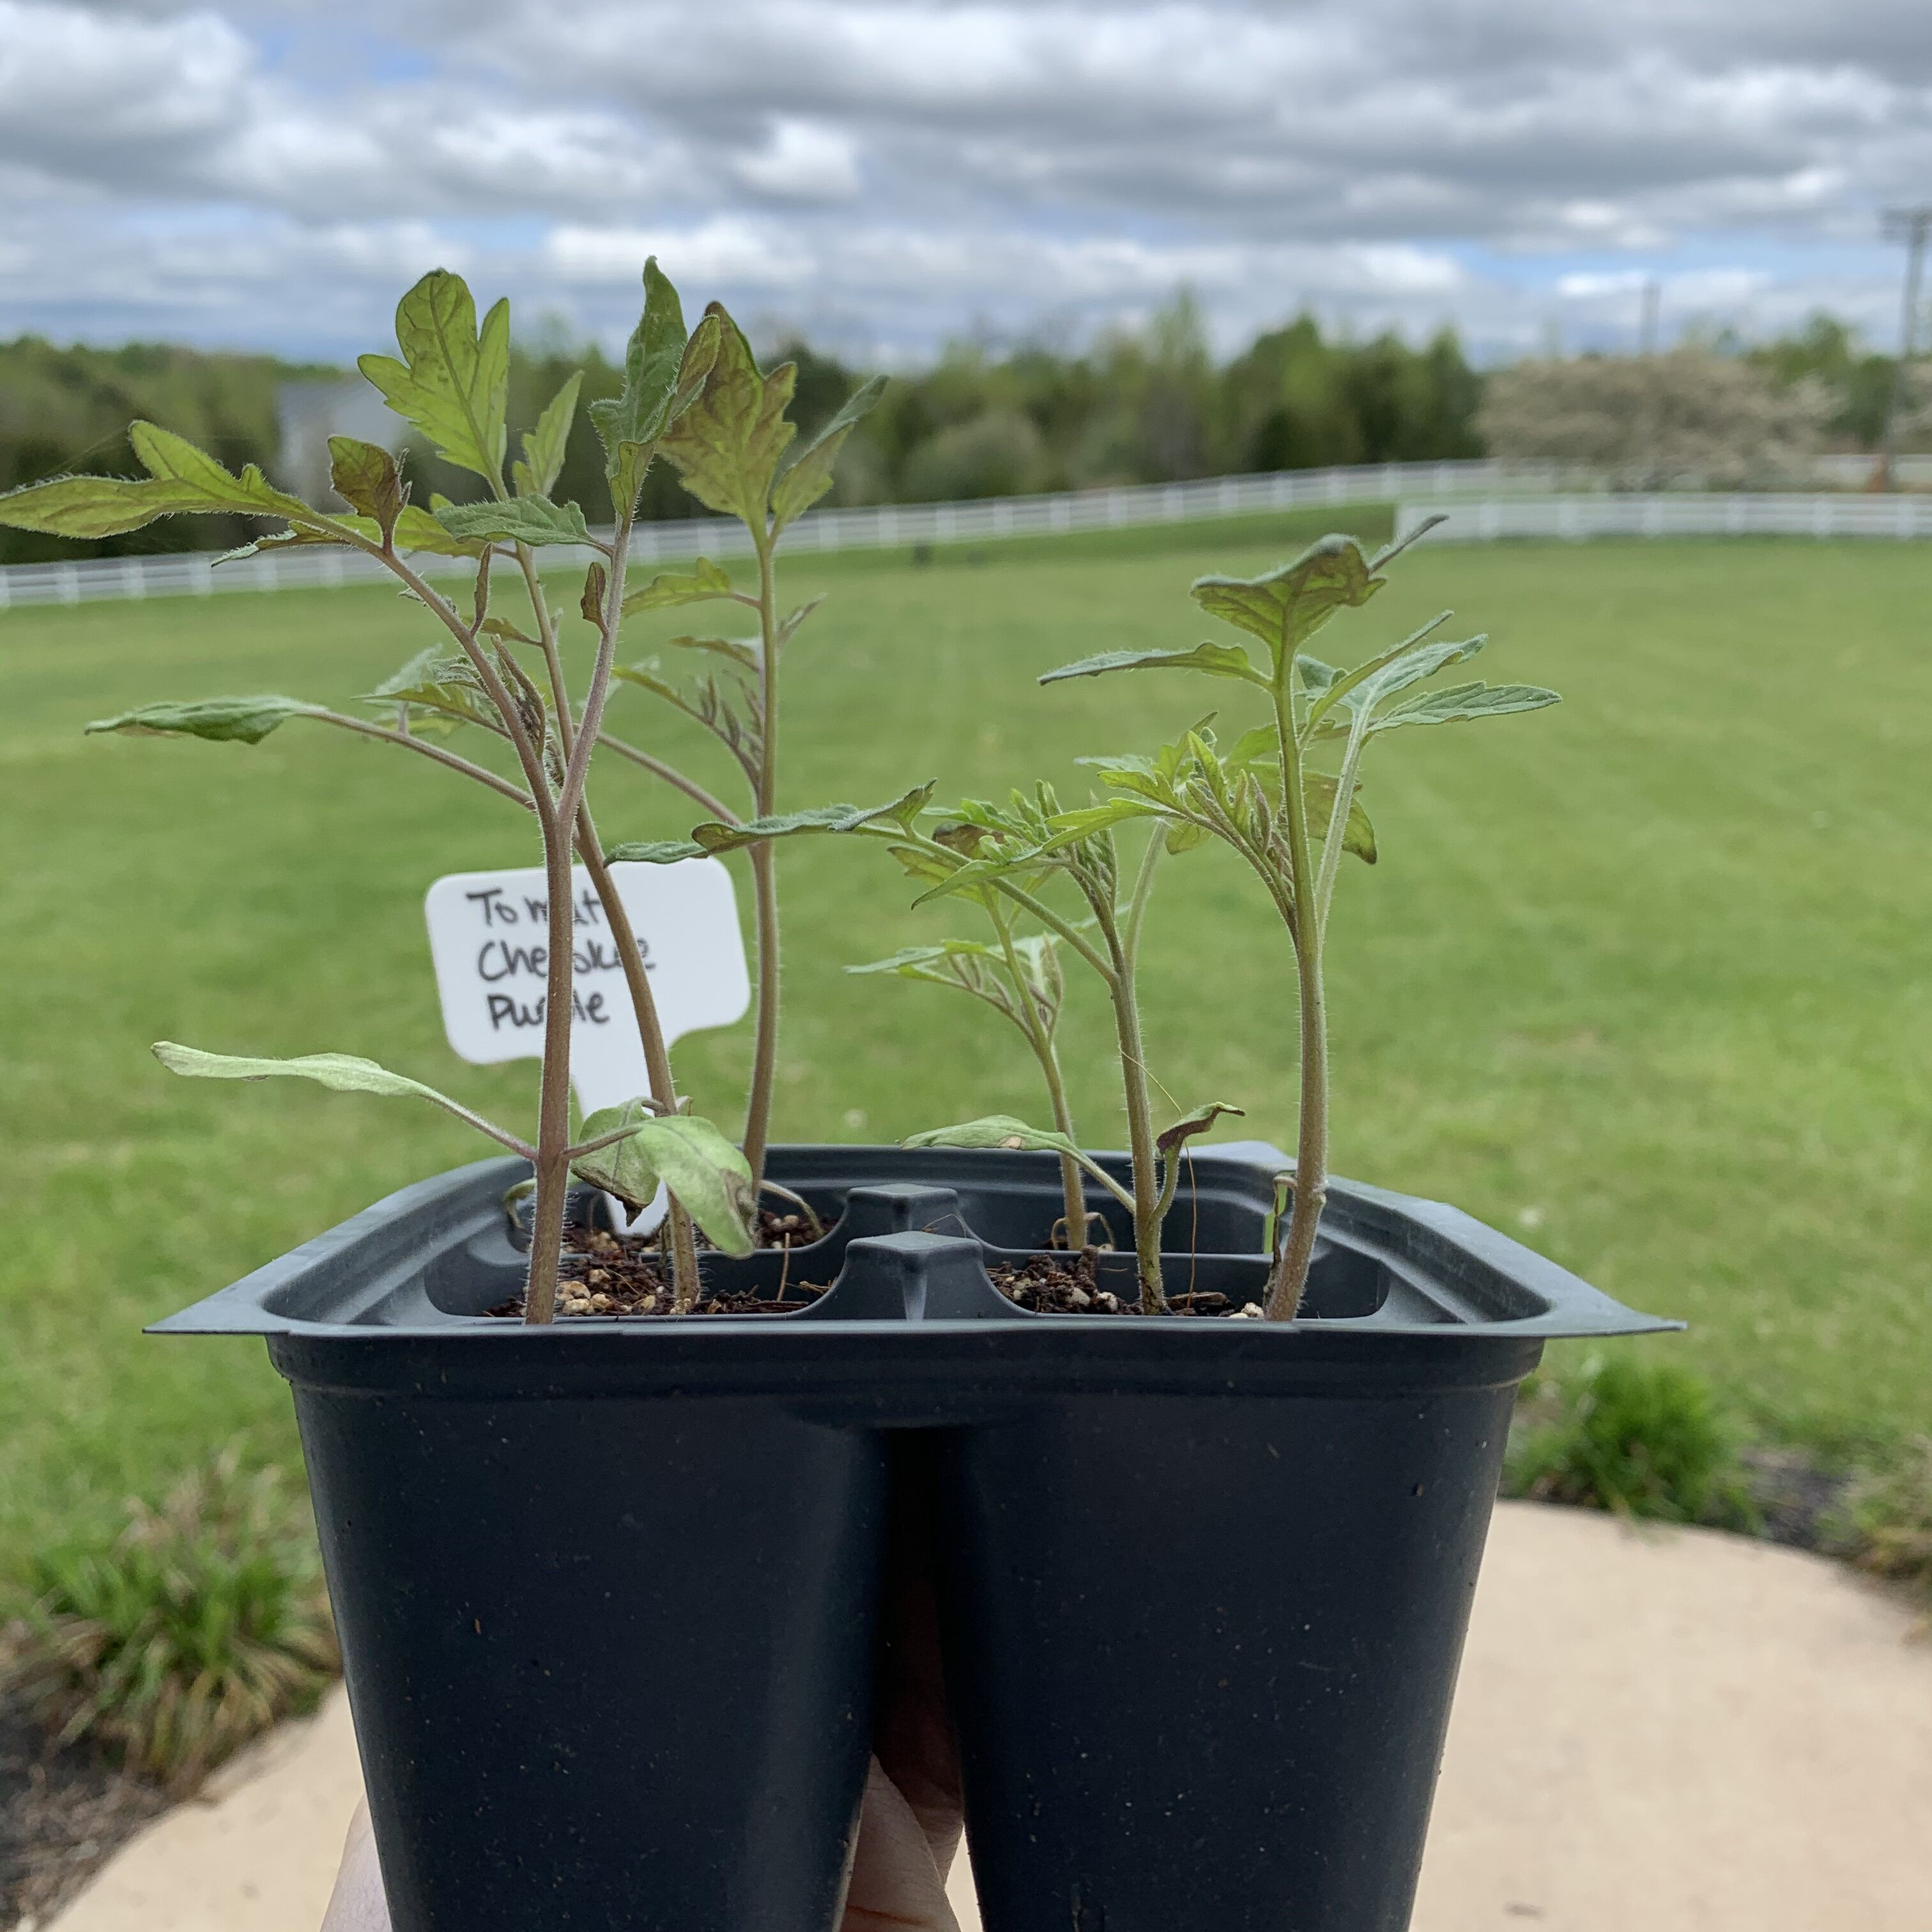 A6CBB968 04A7 4C27 8310 91B055D6CB02 Comparing Burpee Organic Seed Starting Mix vs Miracle Gro Moisture Control Potting Mix for transplanted tomato seedlings - Results